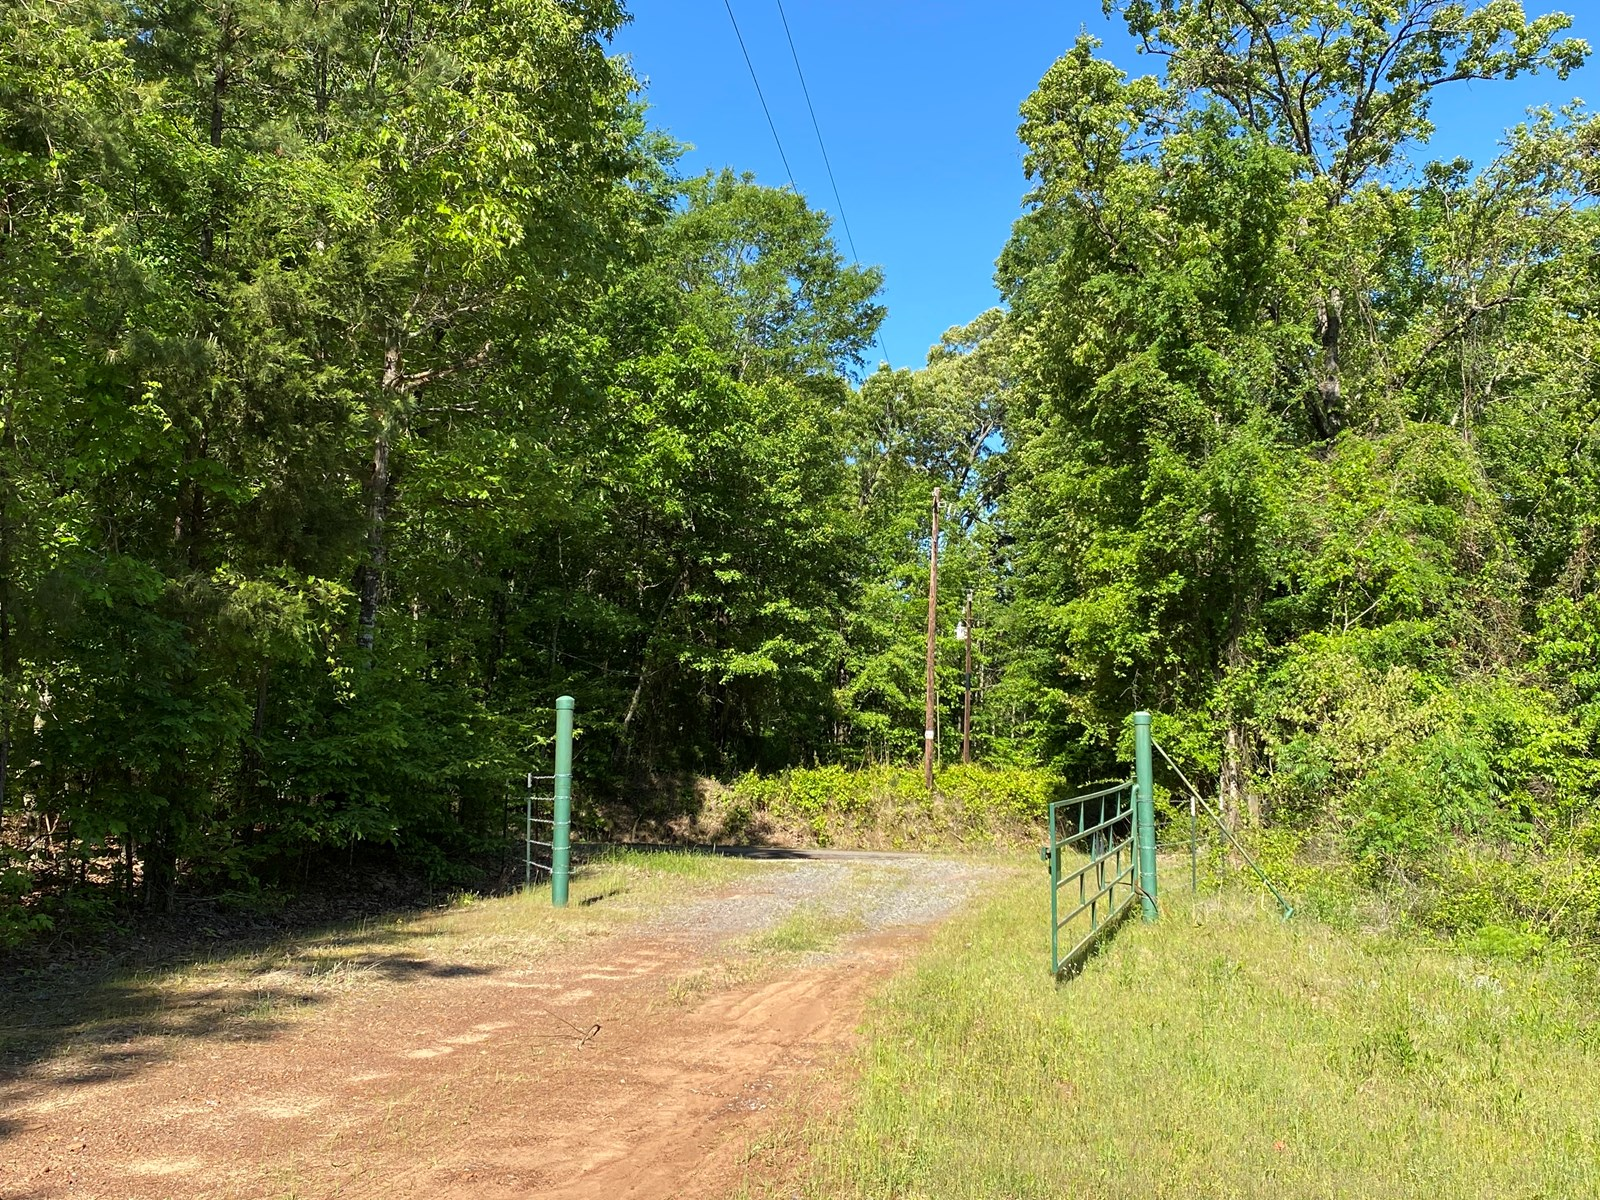 Timber Land For Sale, Upshur County, Ore City, Texas